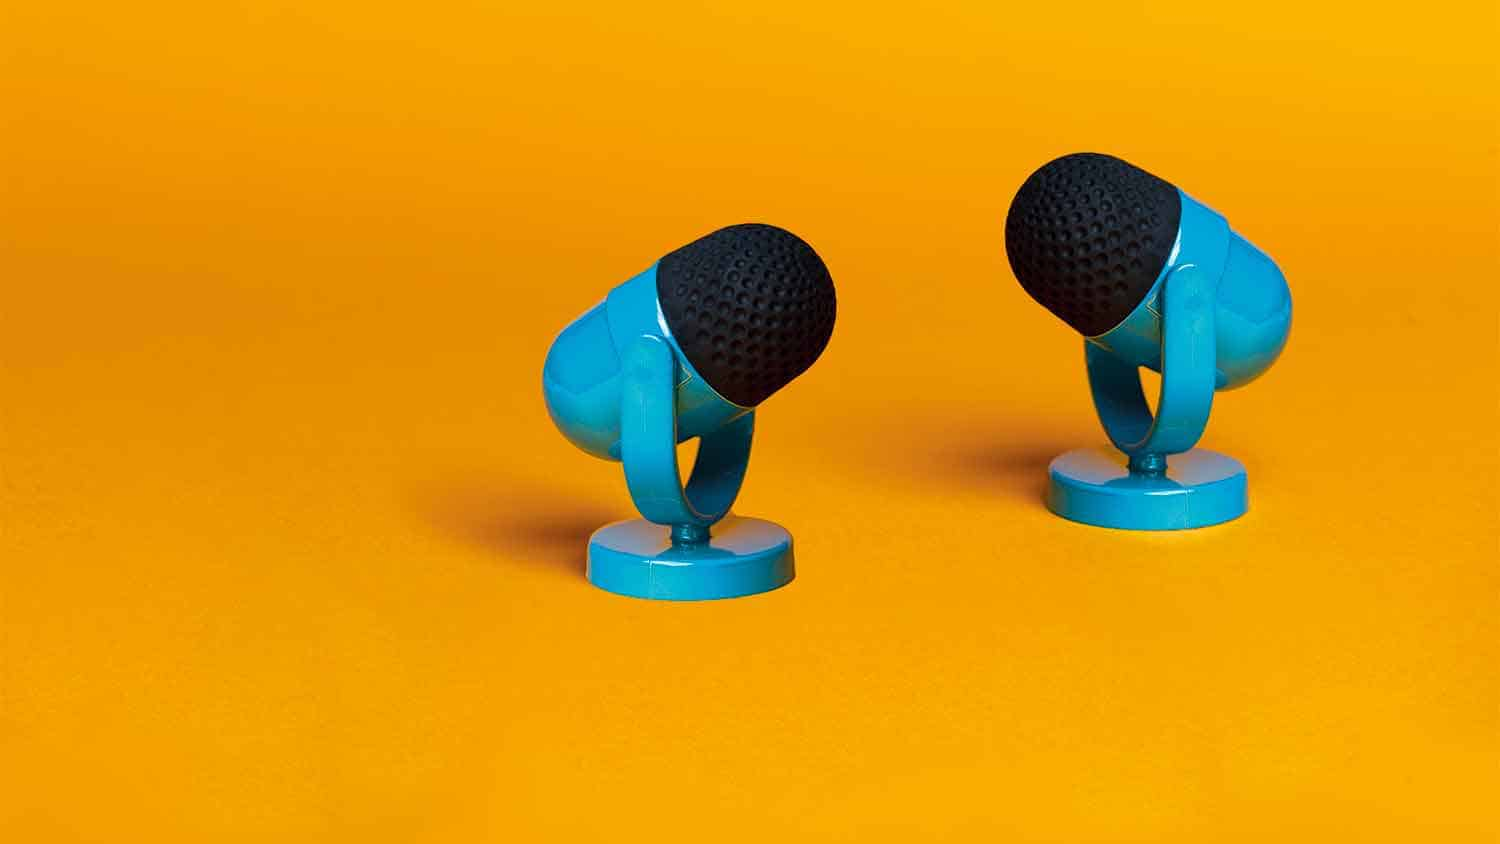 Two blue microphones on an orange background